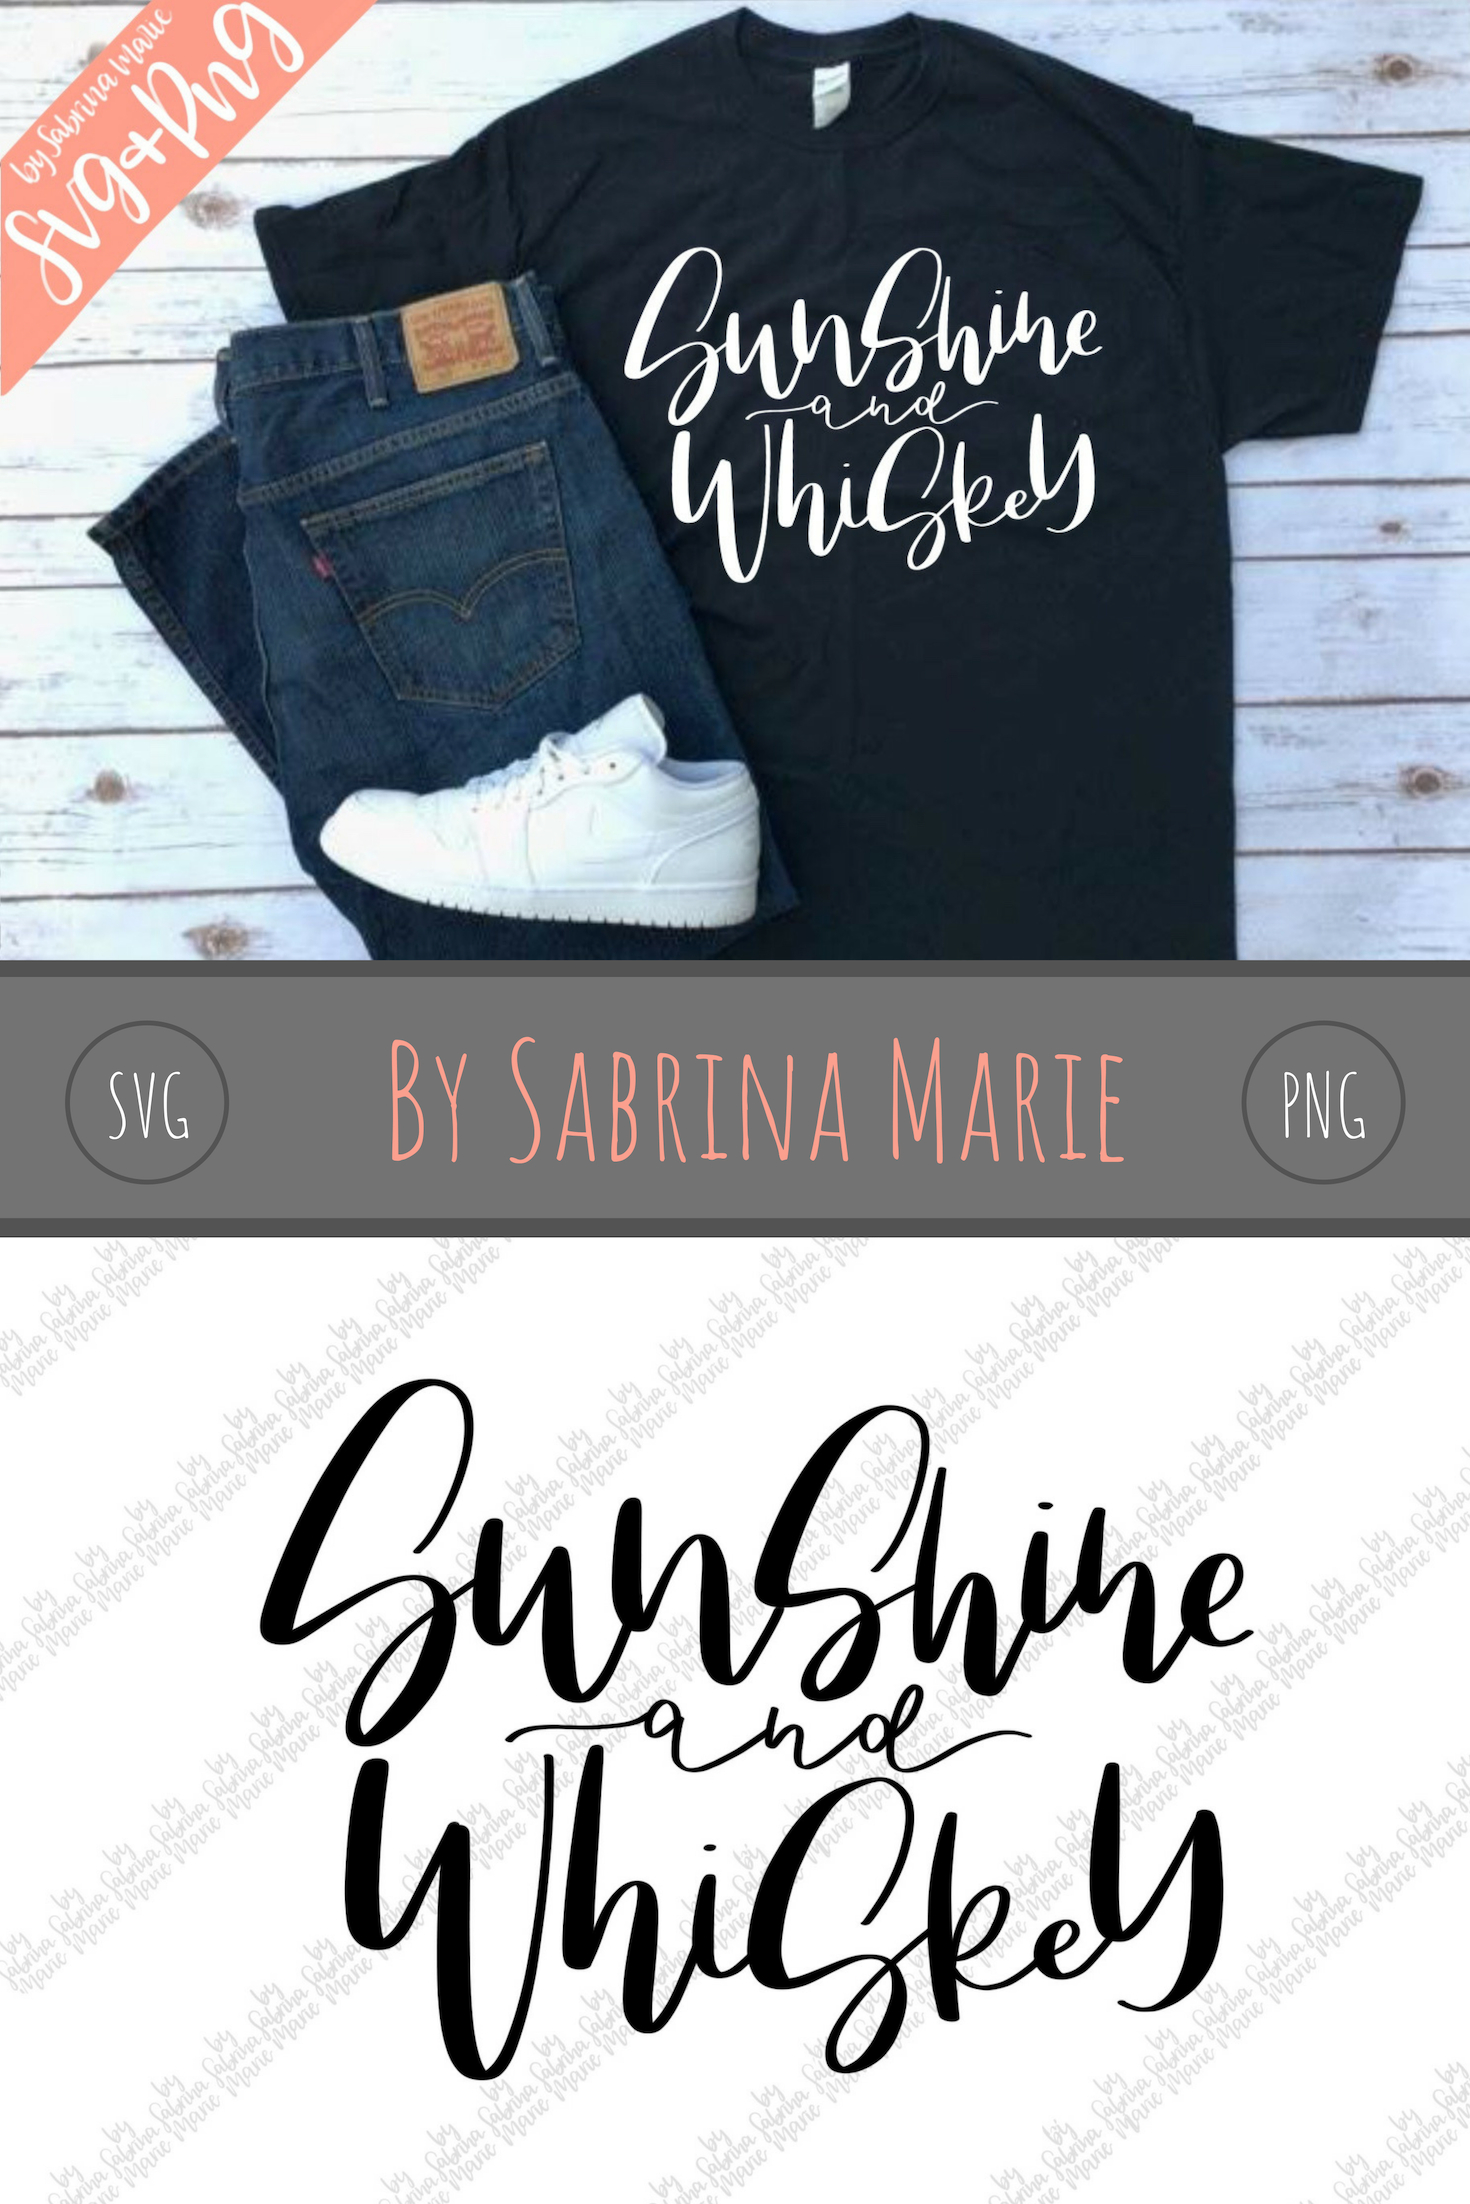 Sunshine and Whiskey Quote|Handdrawn|Cut File|SVG|PNG example image 3